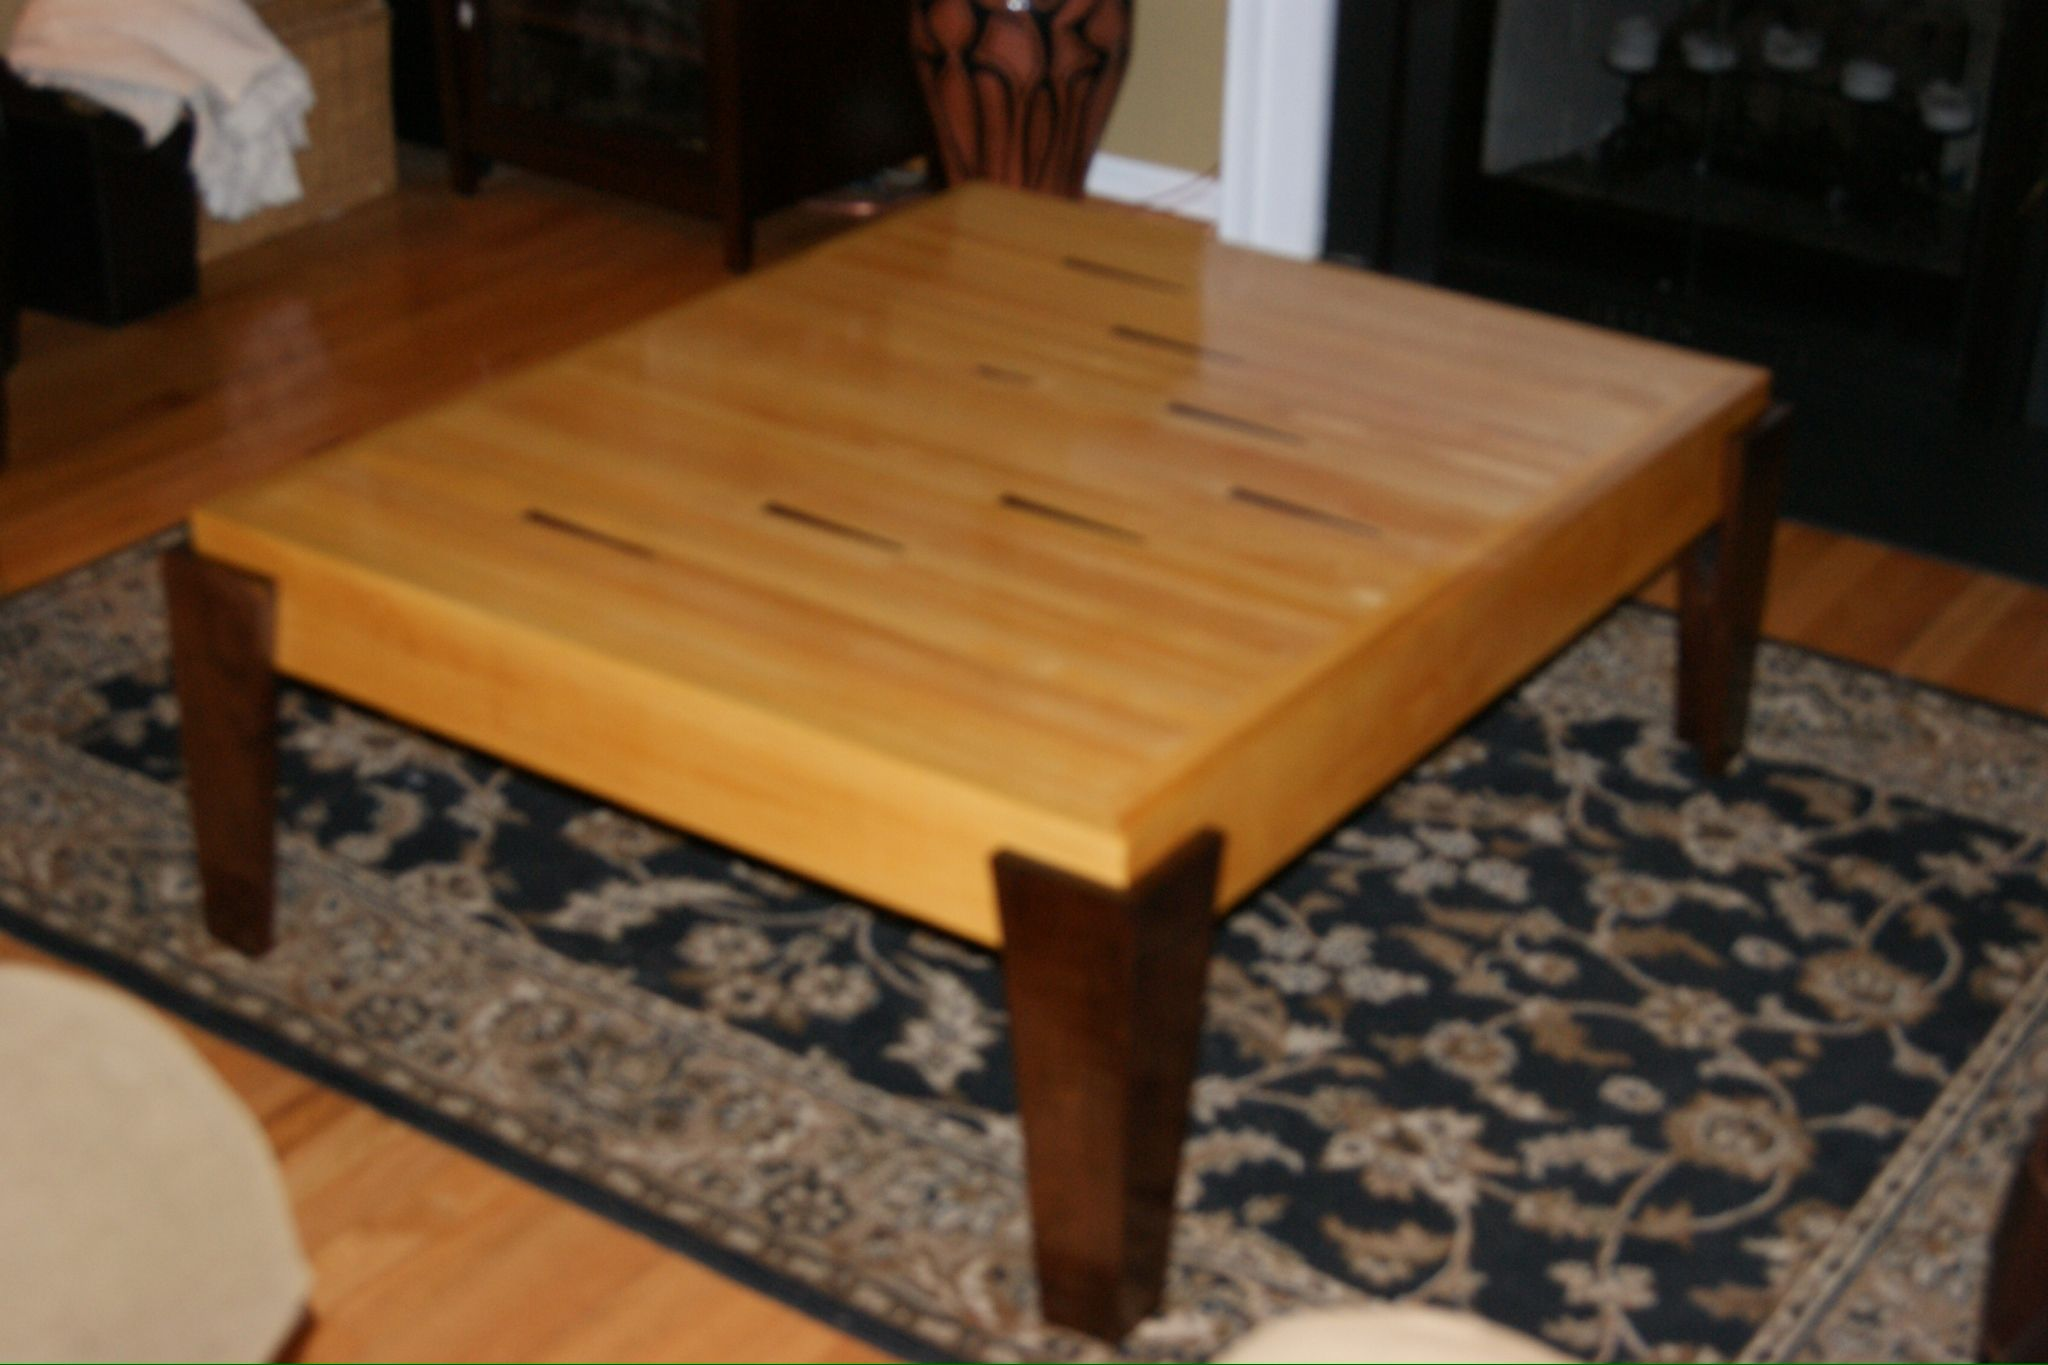 Attractive Coffee Table I Made Out Of A Salvaged Bowling Alley Lane. Awesome Ideas